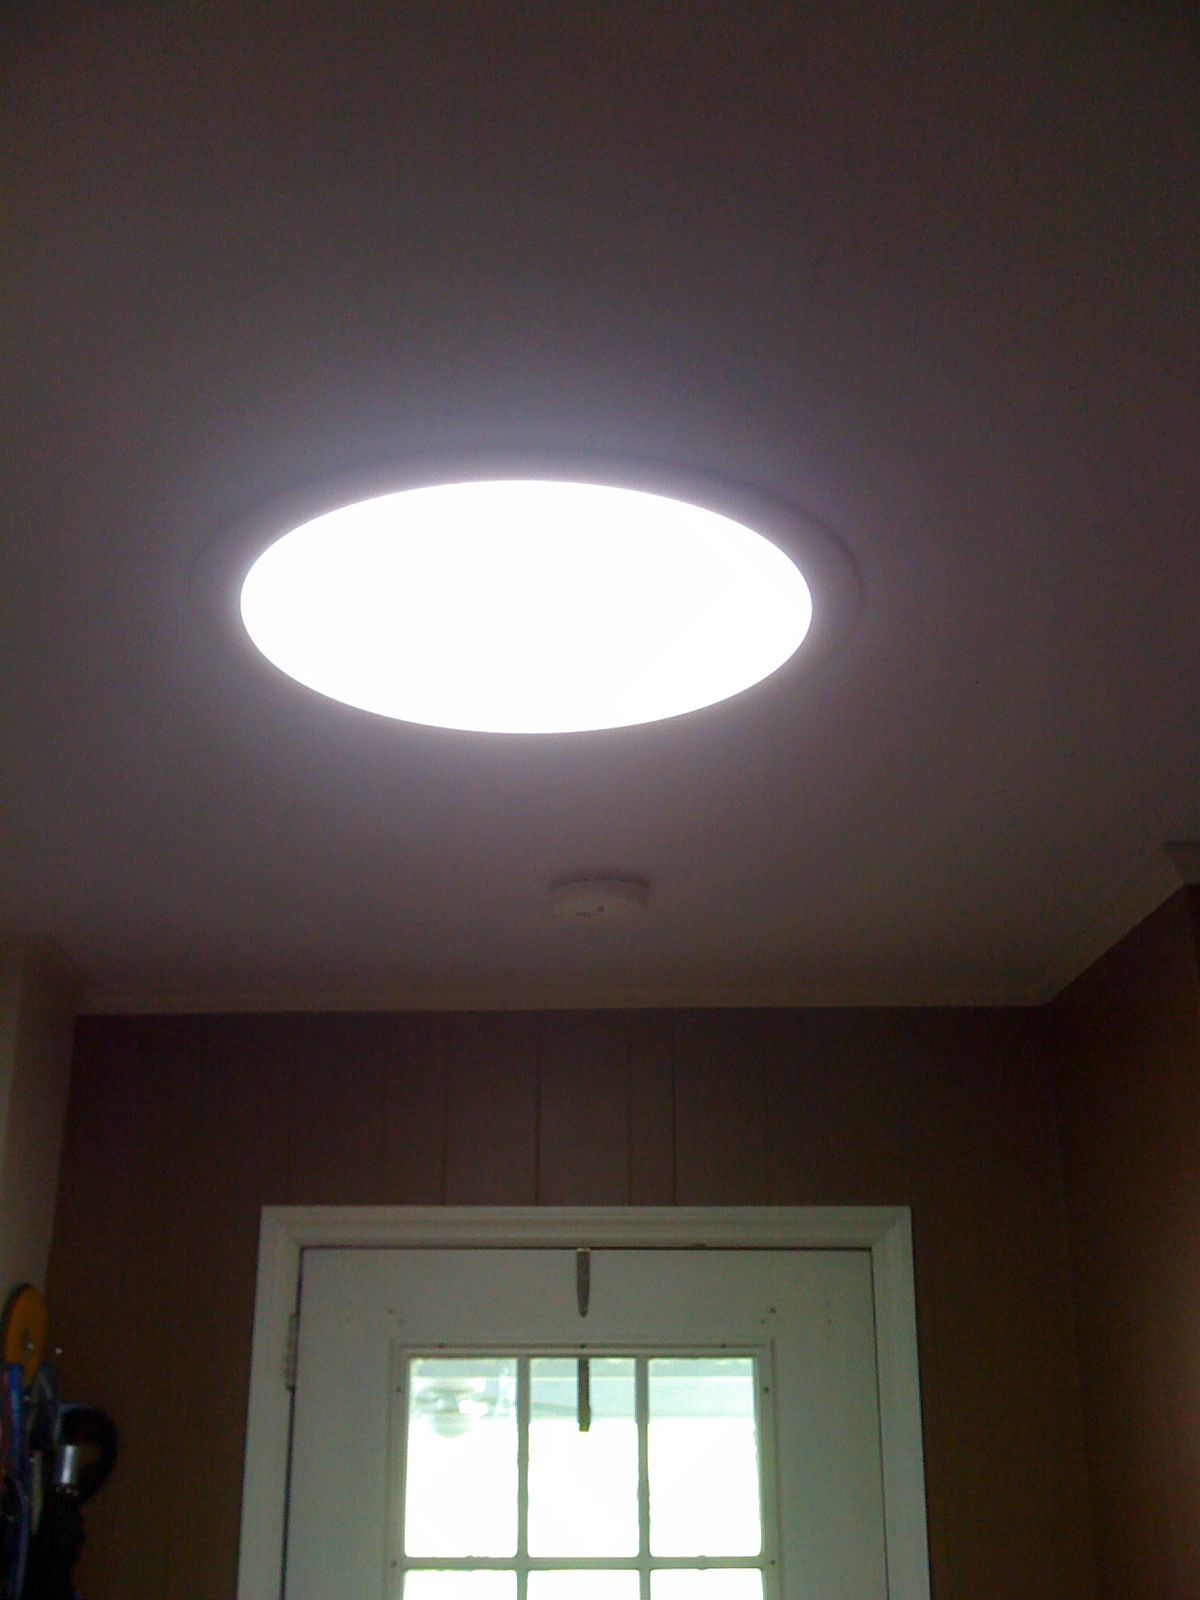 Solar Tunnel fixture in our laundry room